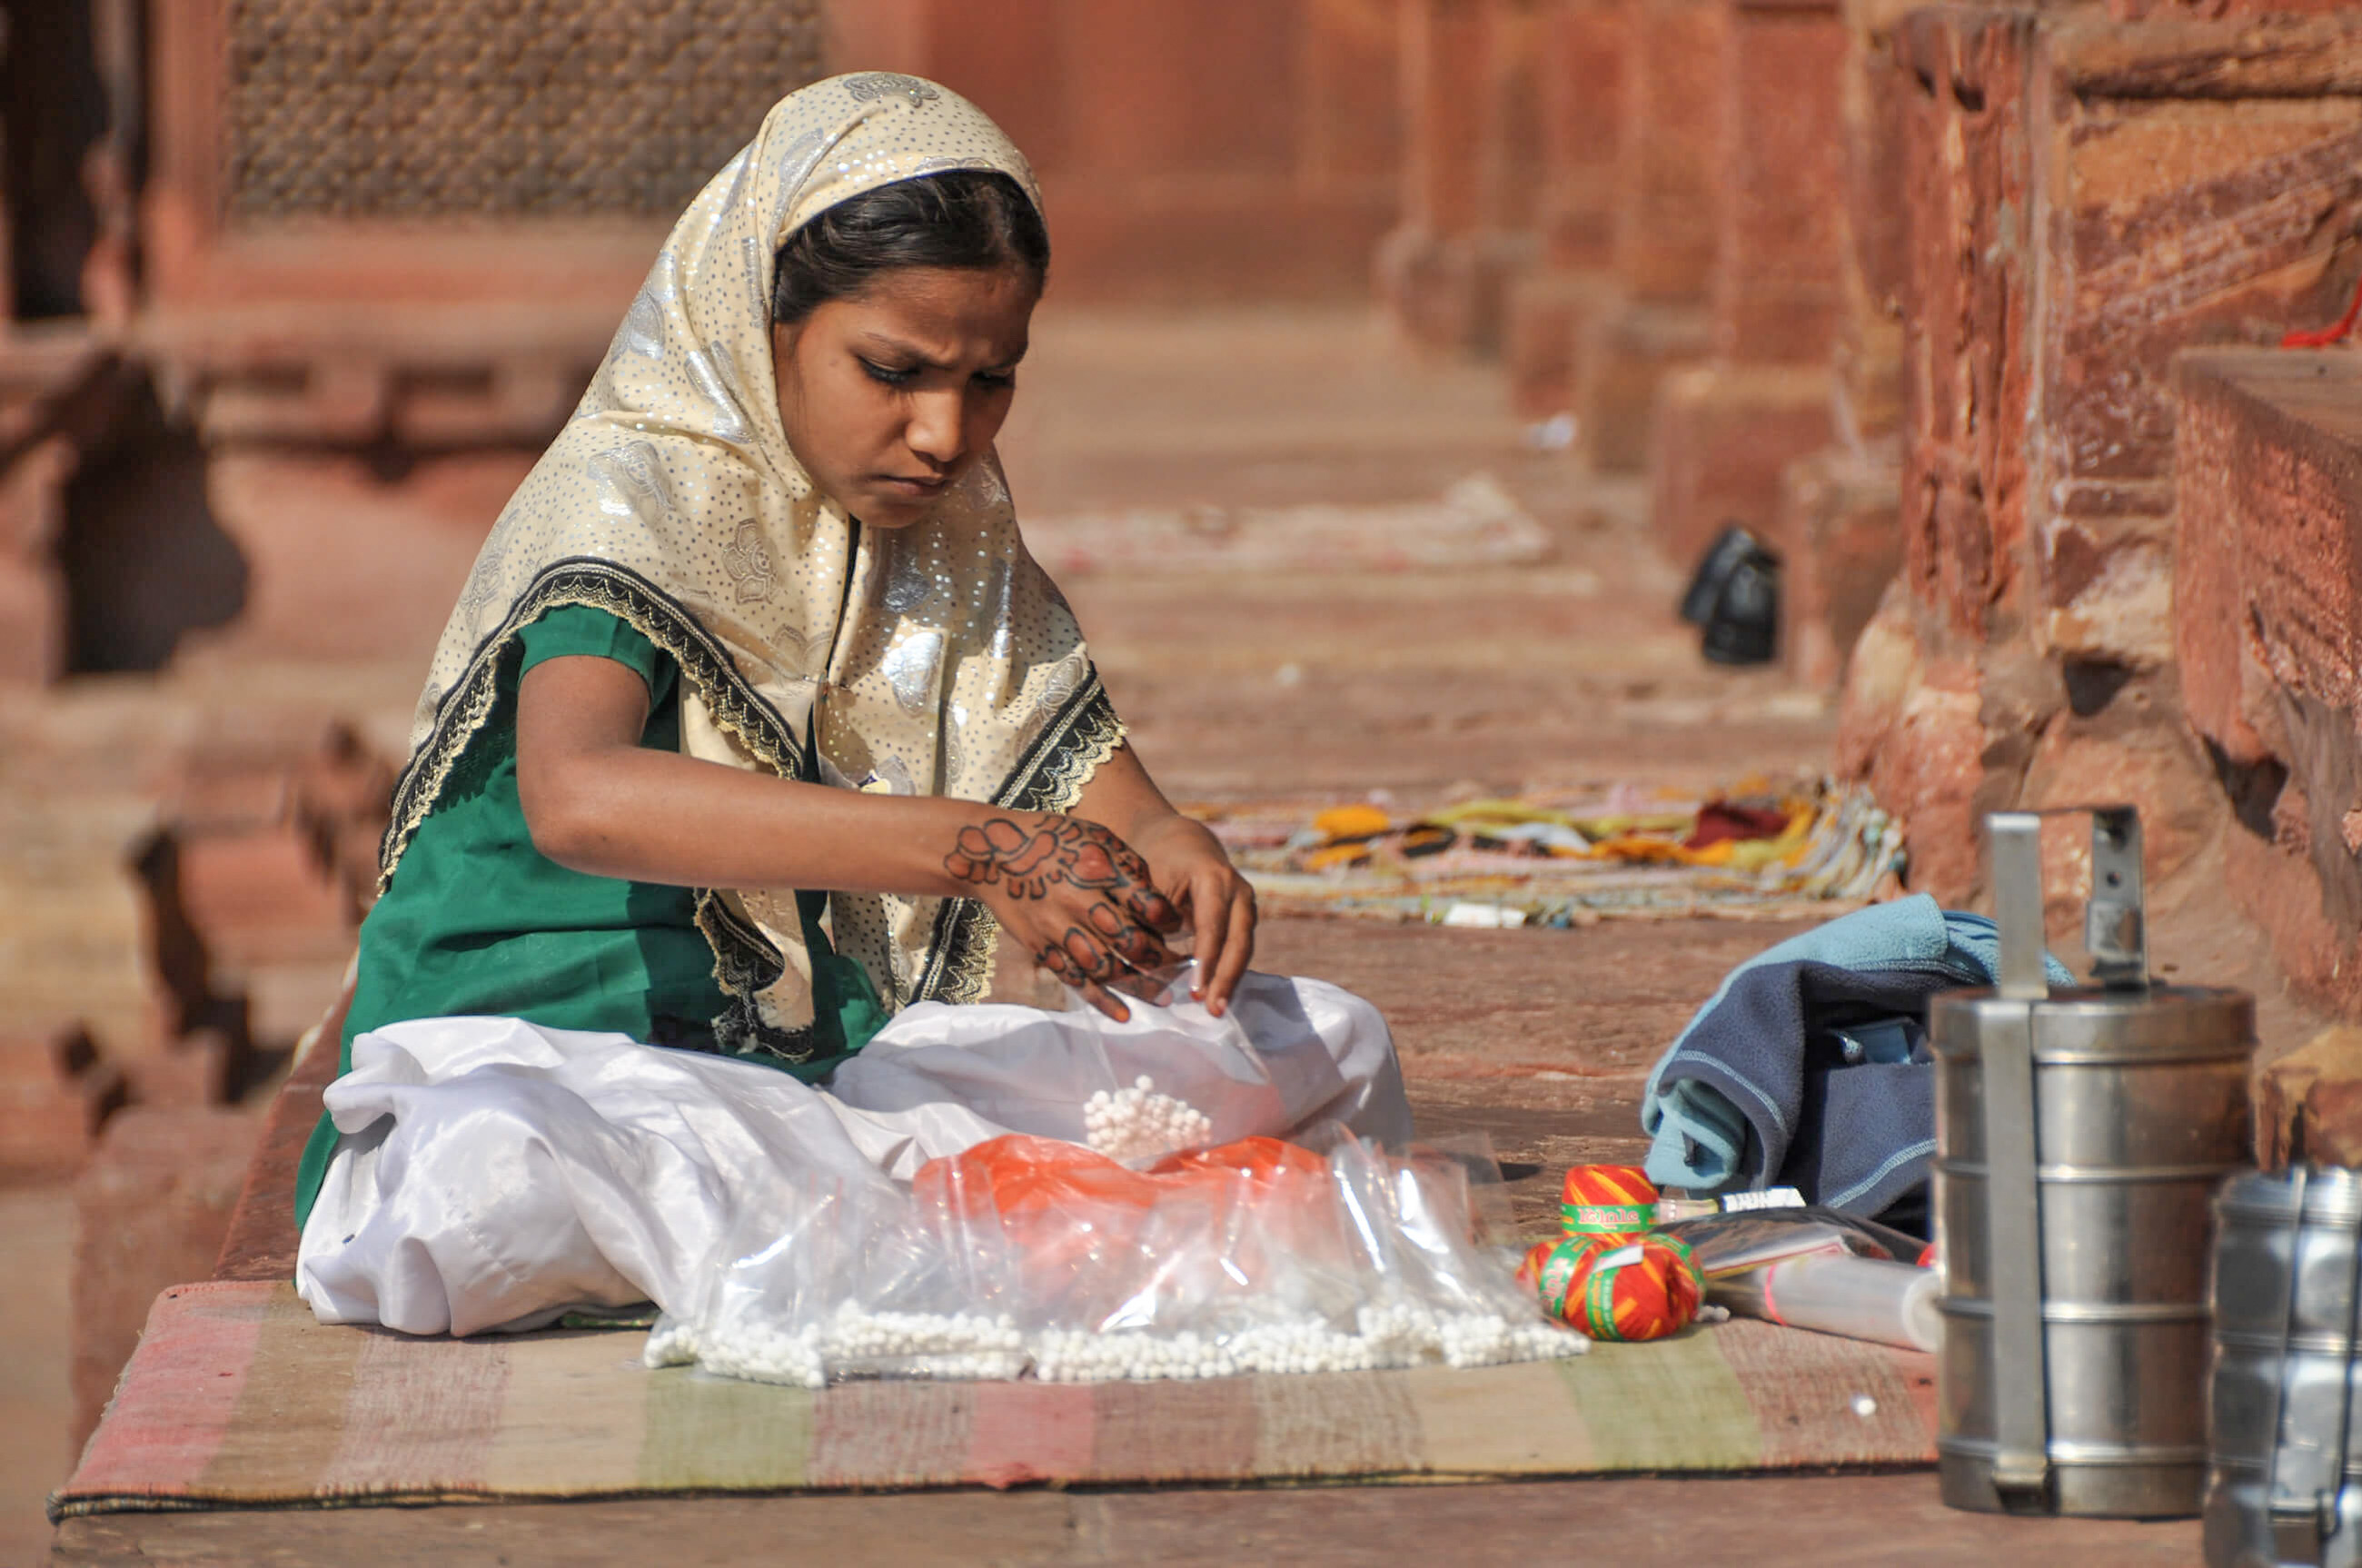 https://bubo.sk/uploads/galleries/4917/tomaskubus_india_fatehpur-sikri-3-.jpg